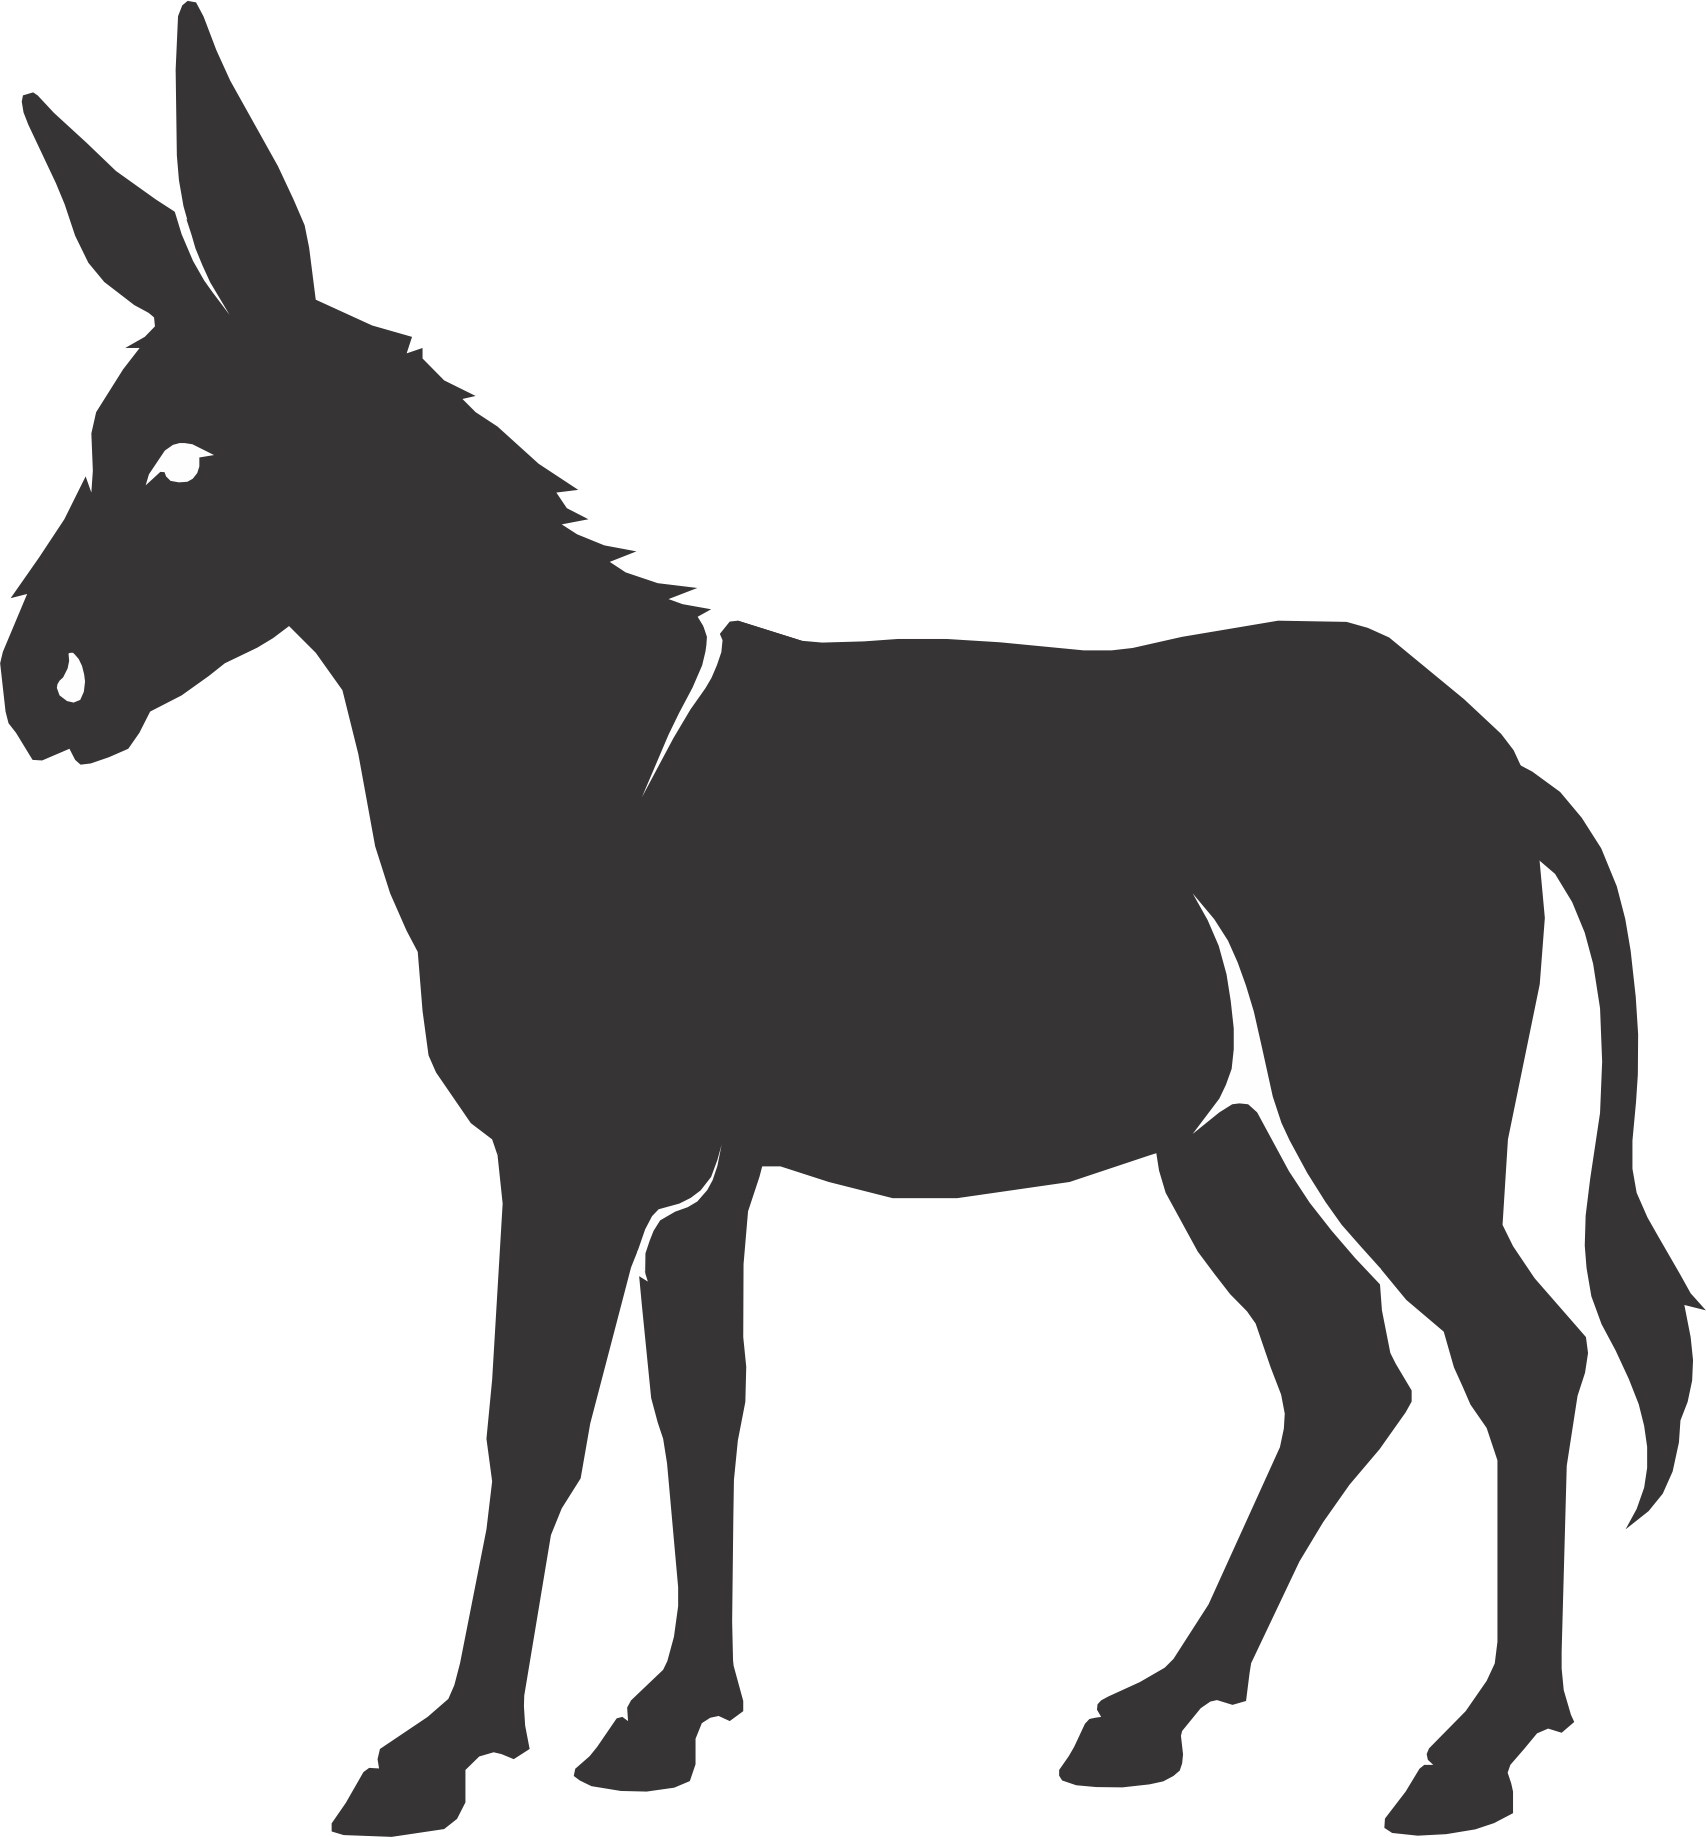 Free Donkey Silhouette Cliparts, Download Free Clip Art.